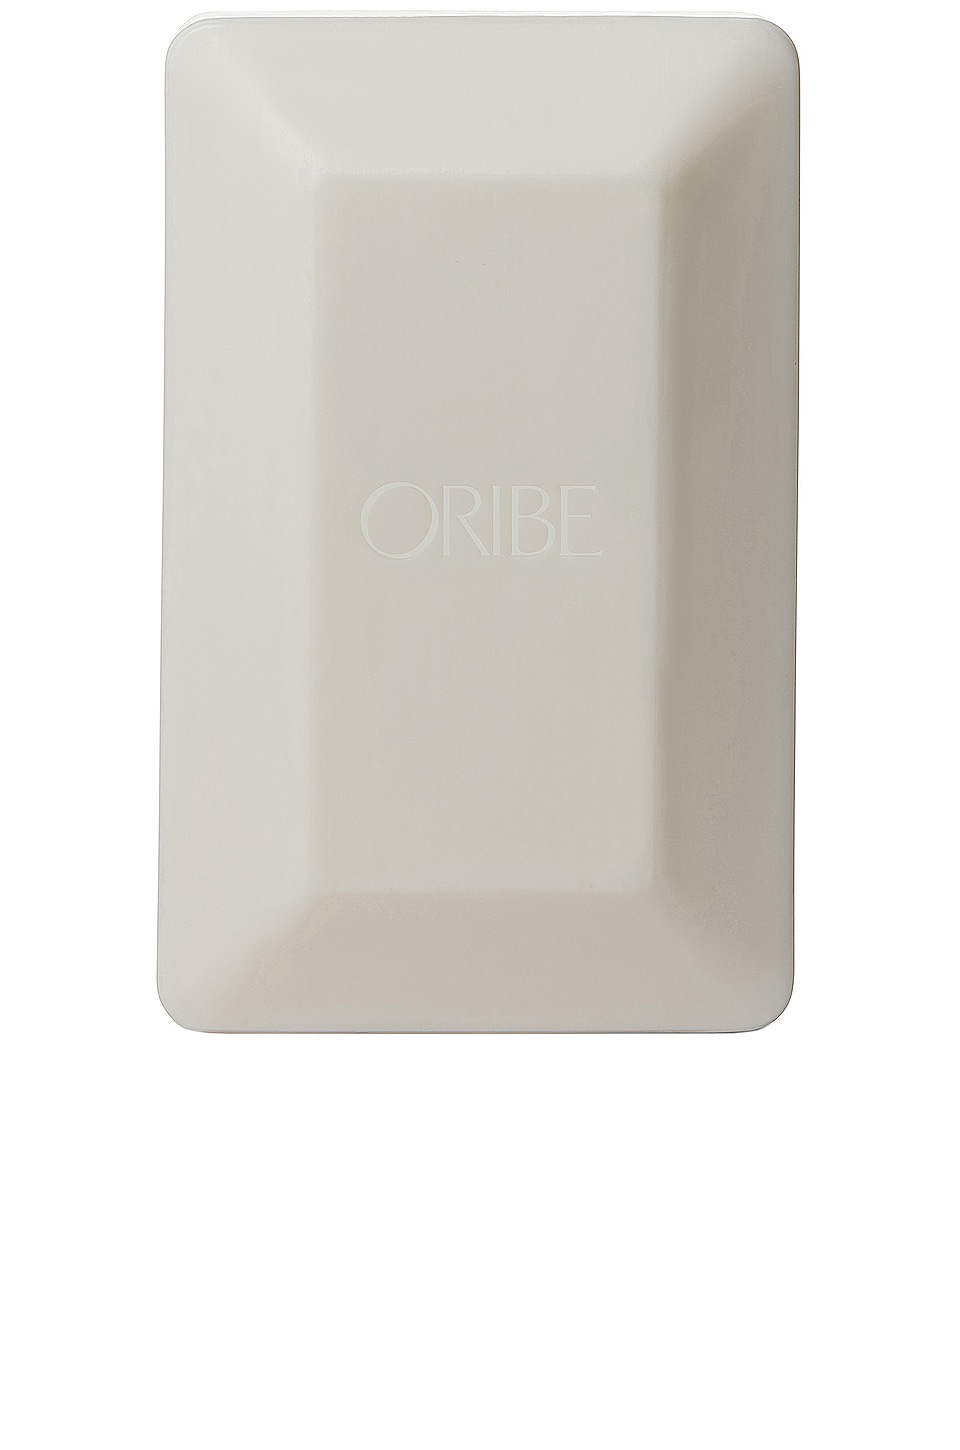 Oribe Cote D'Azur Soap Bar